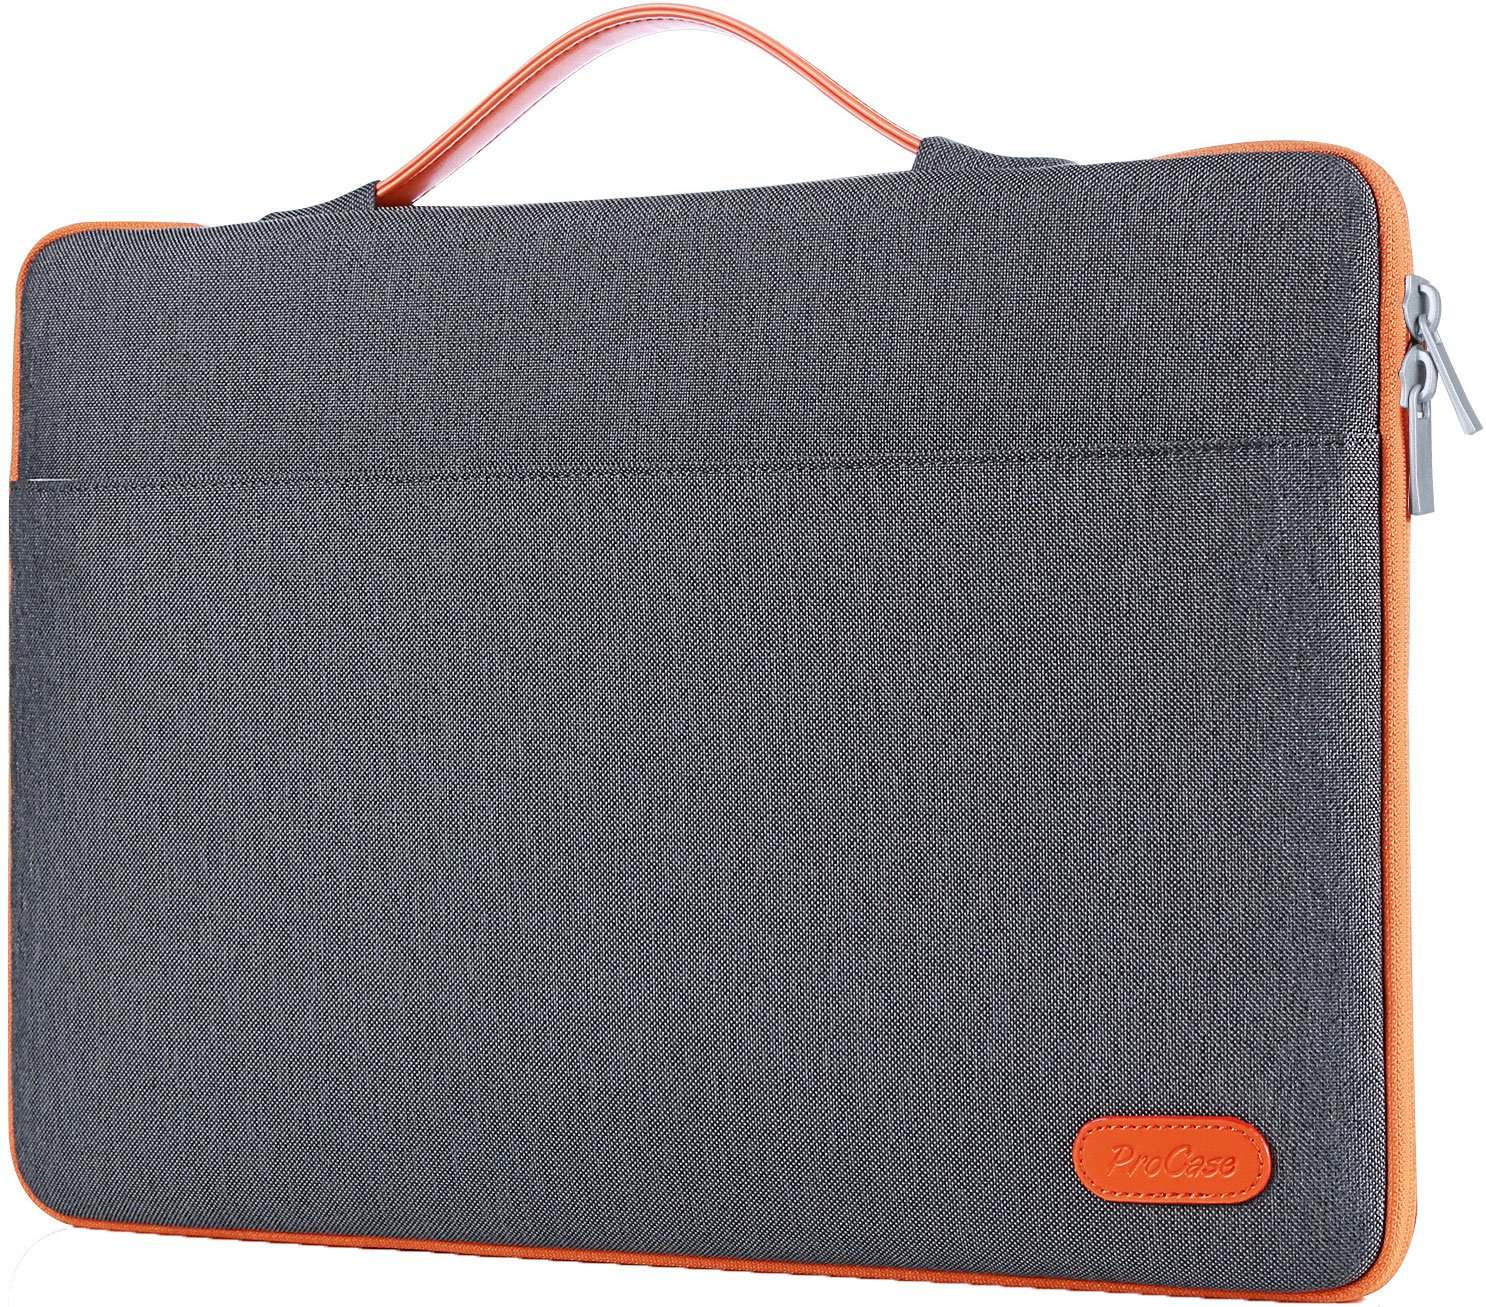 ProCase 14 - 15.6 Inch Laptop Sleeve Case Protective Bag, Ultrabook Notebook Carrying Case Handbag for 14'' 15'' Samsung Sony ASUS Acer Lenovo Dell HP Toshiba Chromebook Computers -Dark Grey